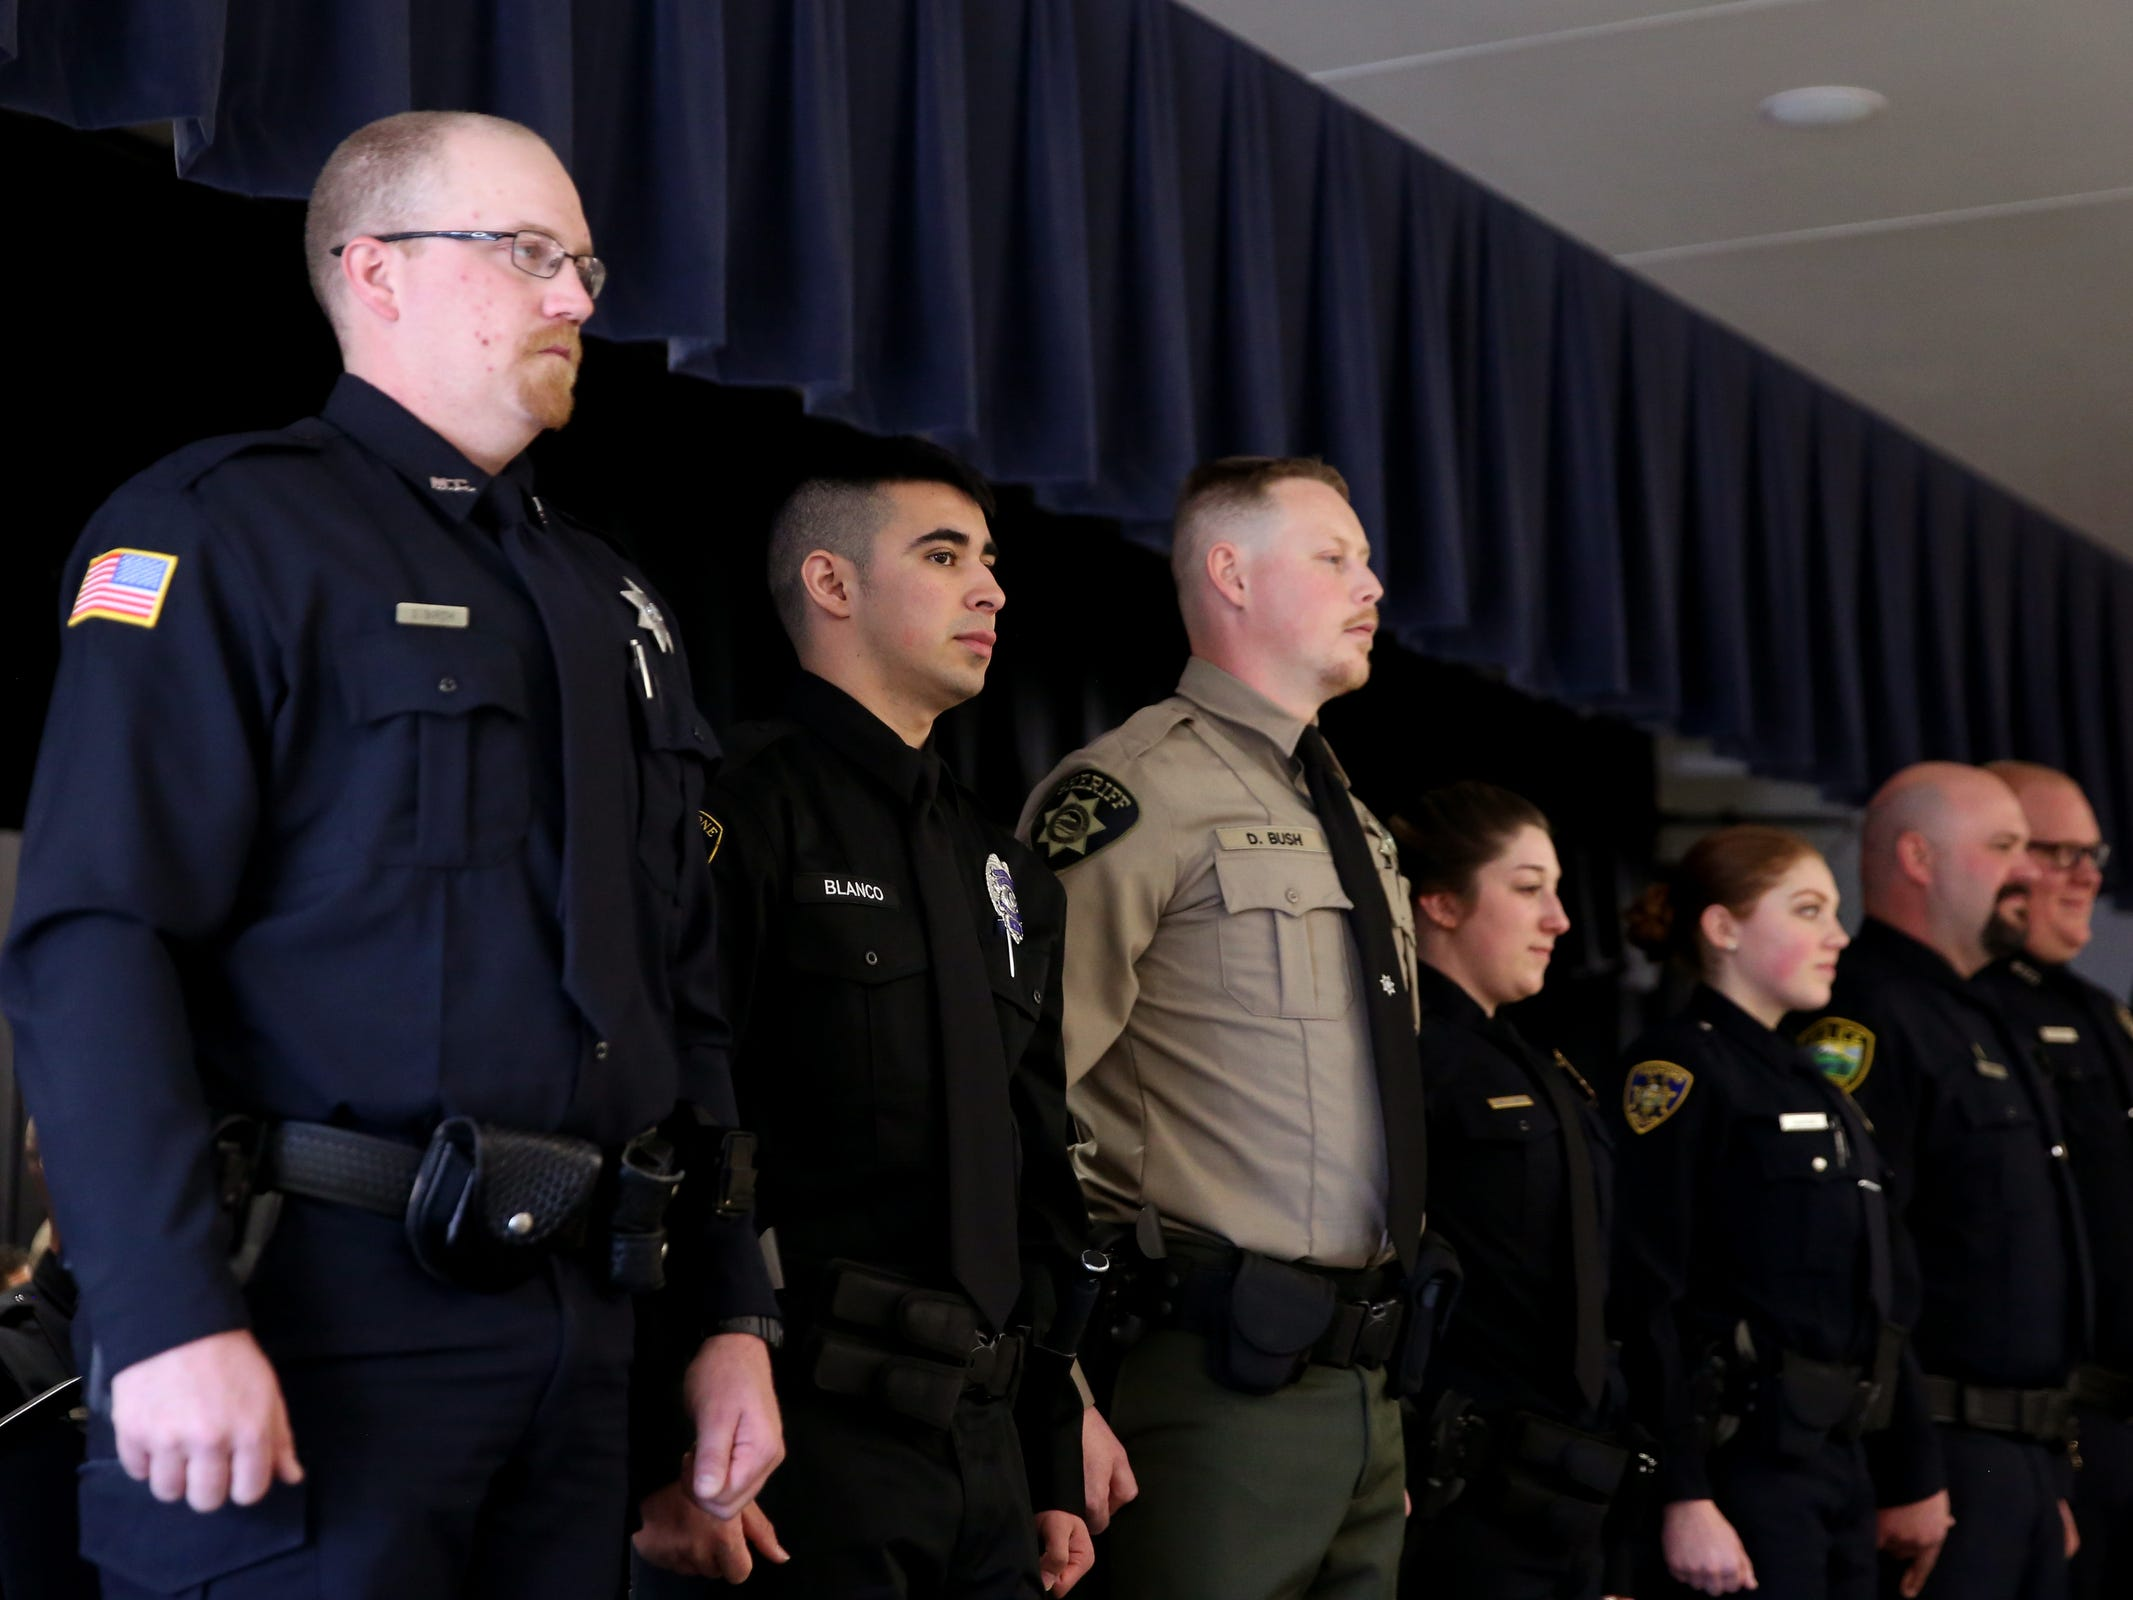 Graduates stand during a Basic Police Class graduation ceremony at the Department of Public Safety Standards and Training in Salem on March 15, 2019.